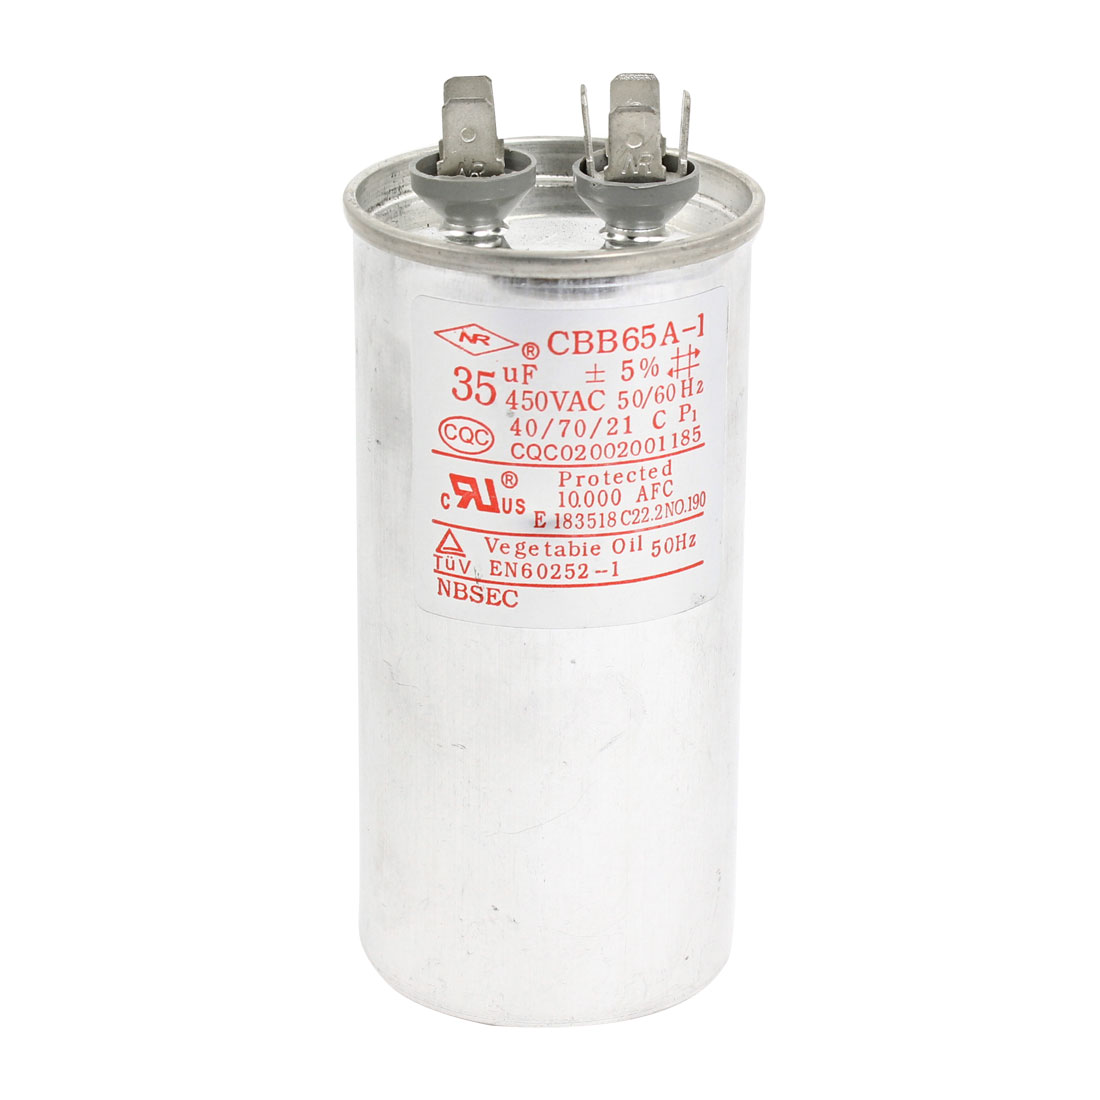 AC 450V 35uF Polypropylene Film Motor Run Capacitor for Air Conditioner